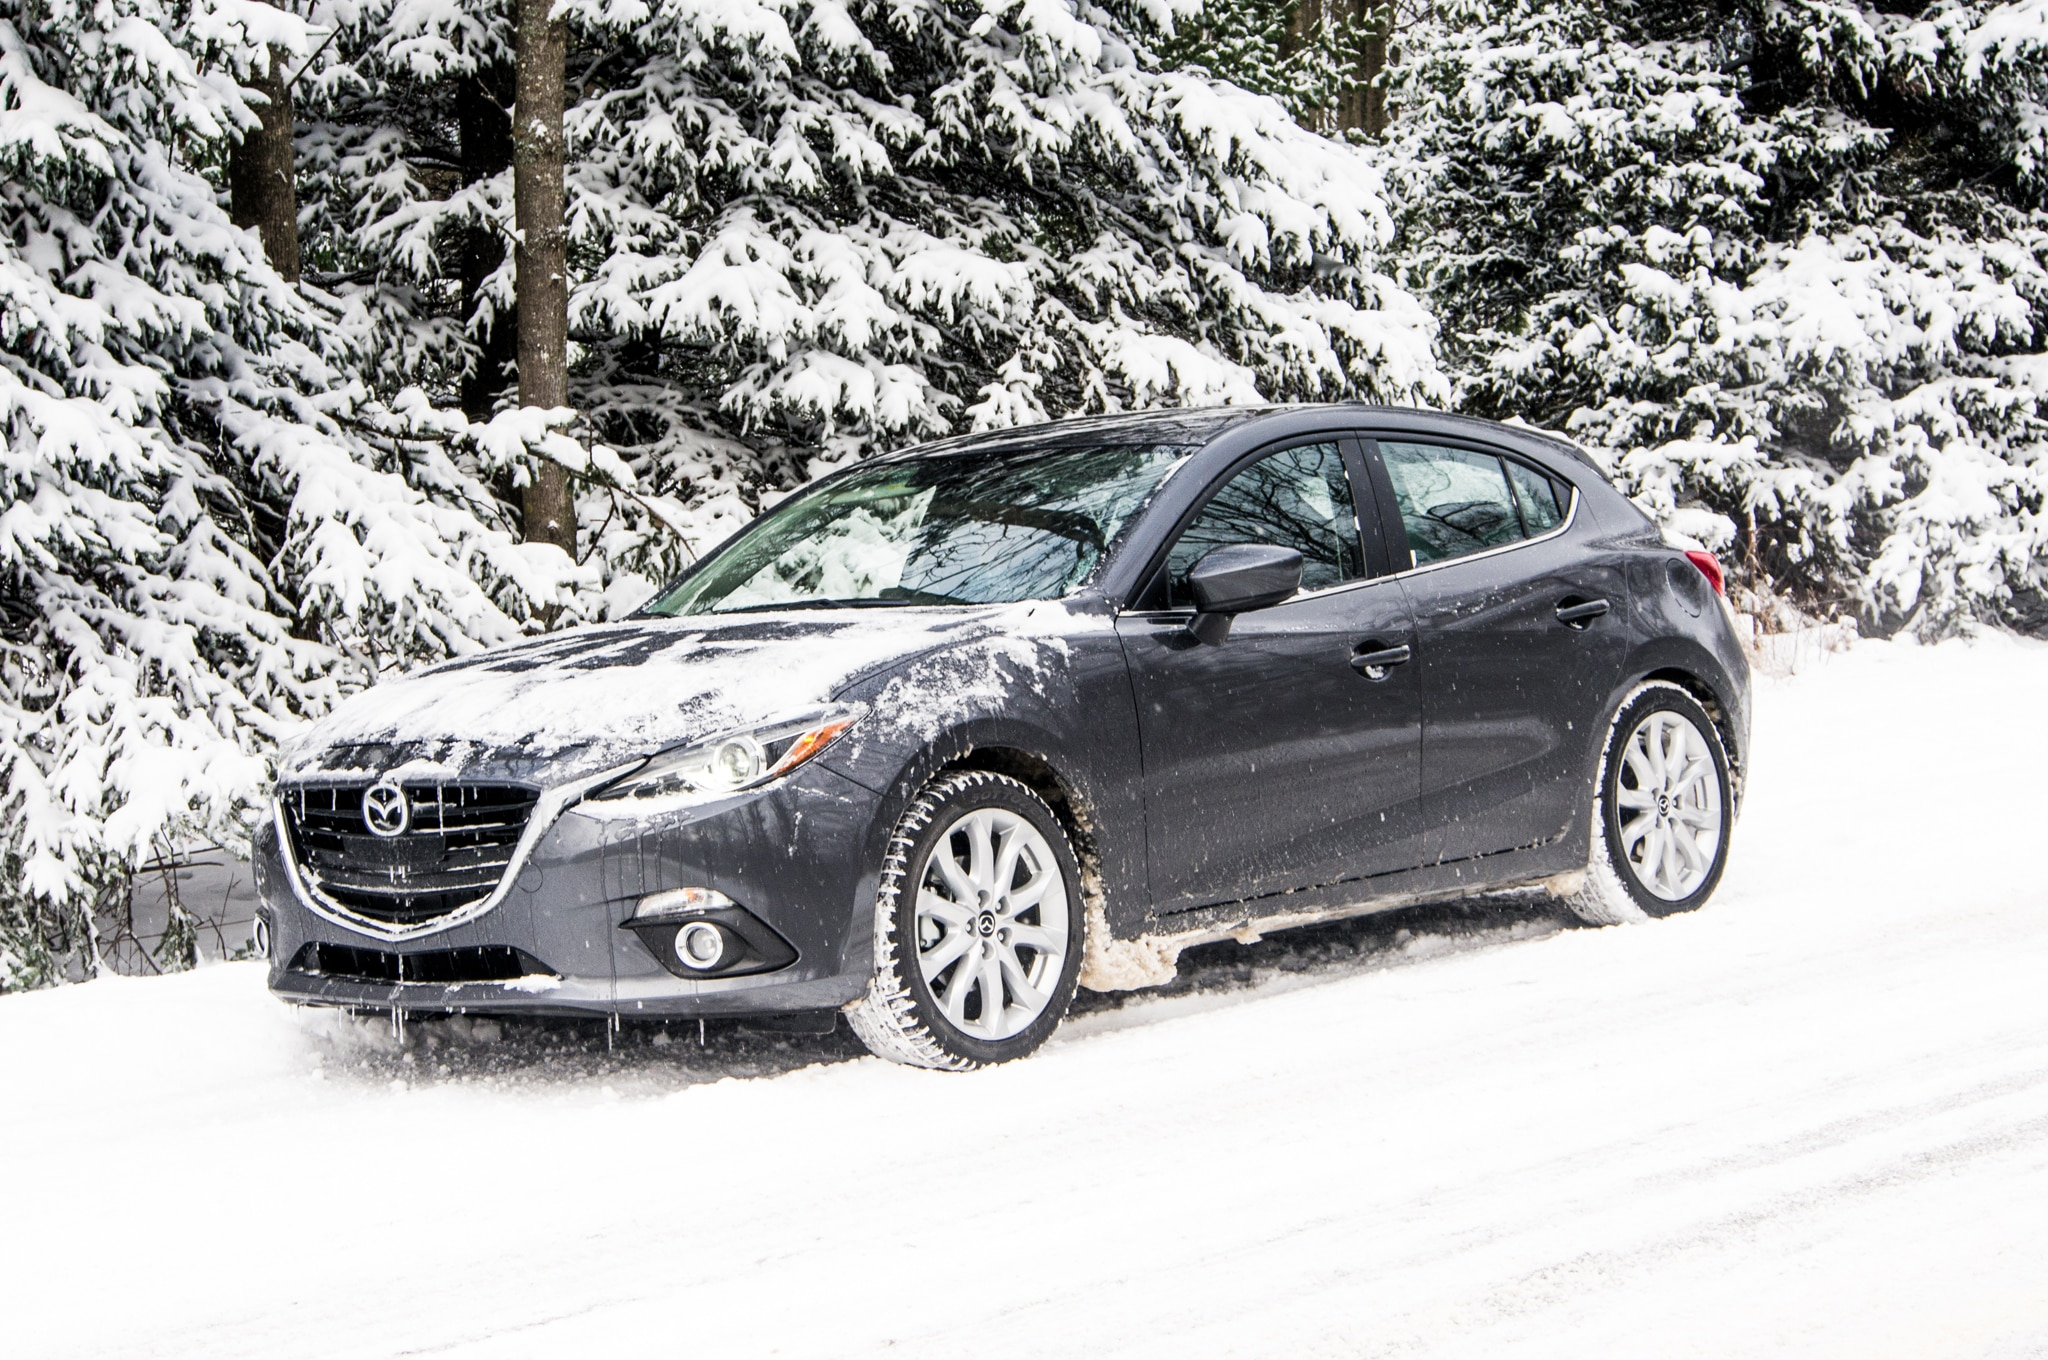 2014 Mazda 3 Front Three Quarter 2 Four Seasons March1